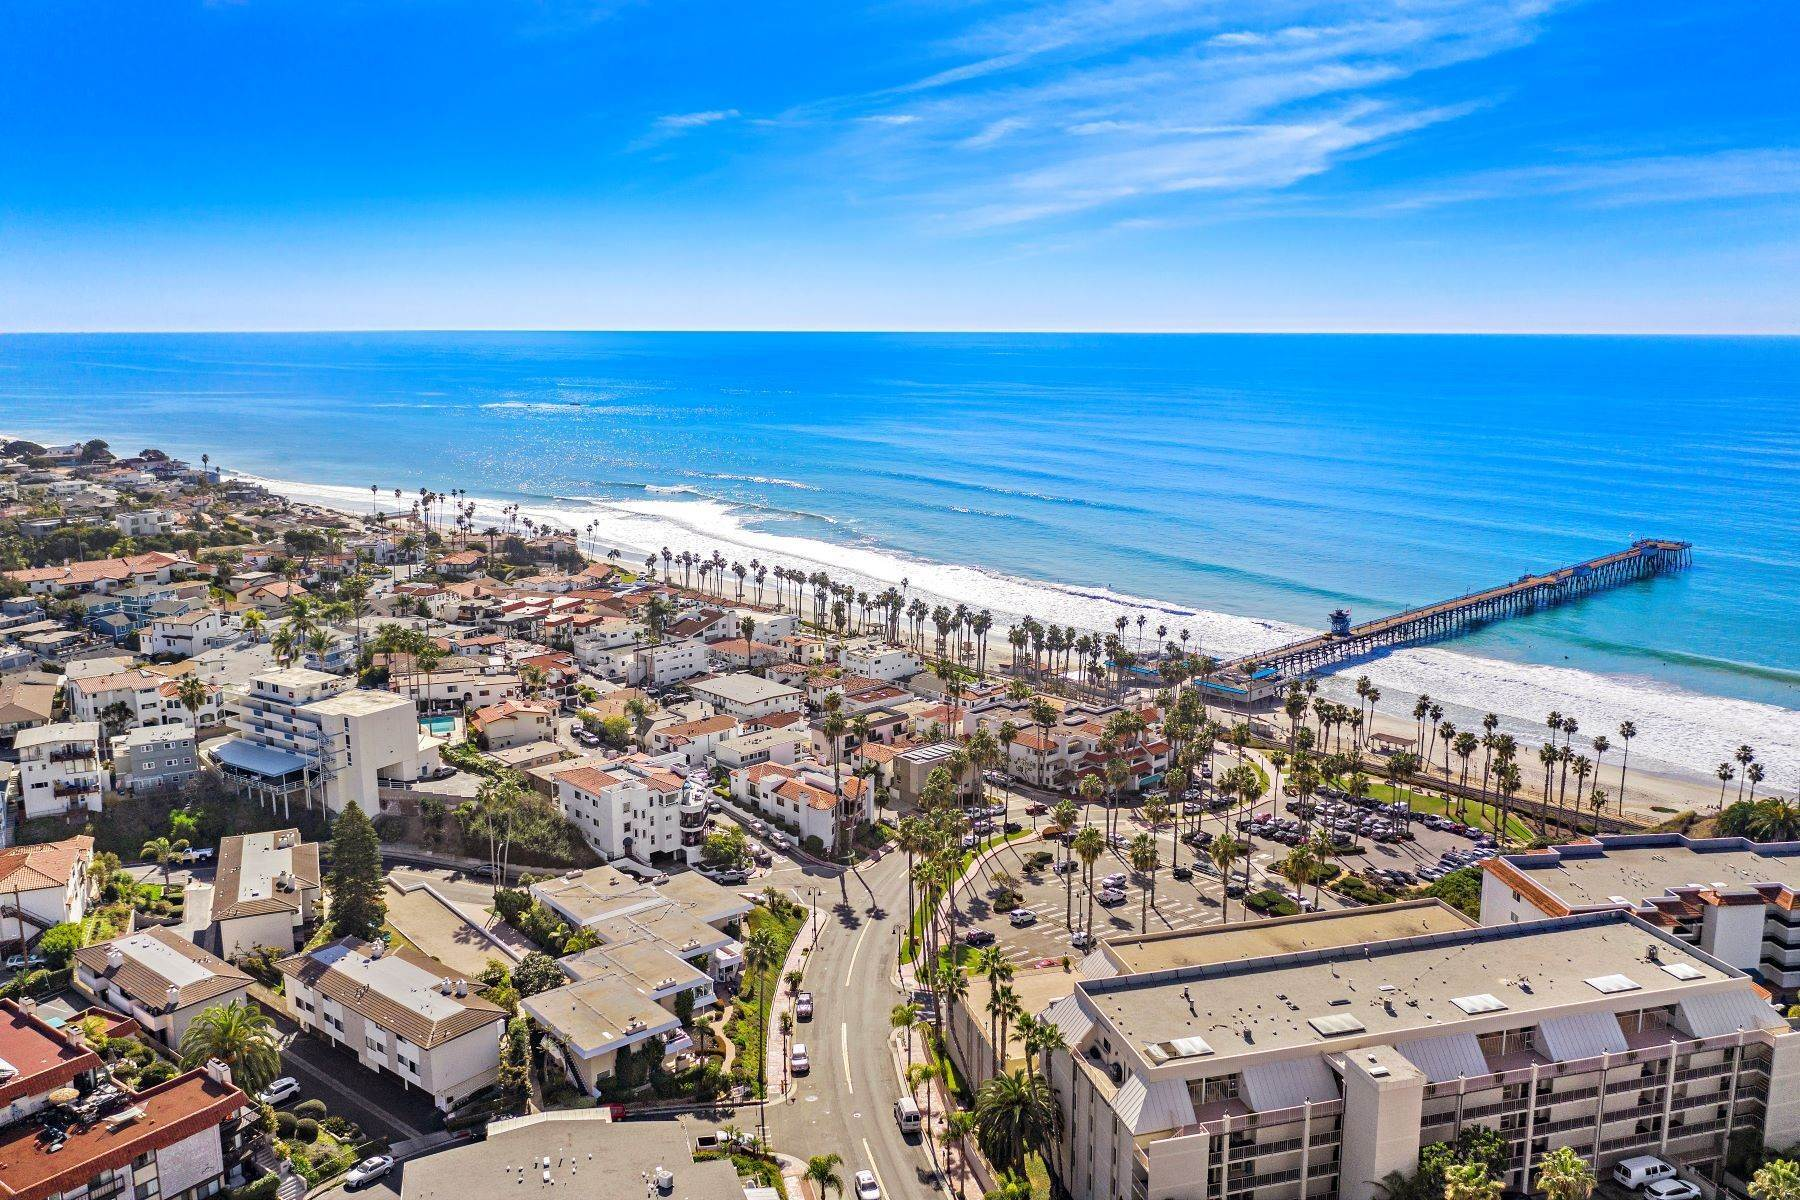 35. Condominiums for Sale at 321 Acebo Lane Unit #C, San Clemente, CA 92672 321 Acebo Lane, Unit #C San Clemente, California 92672 United States